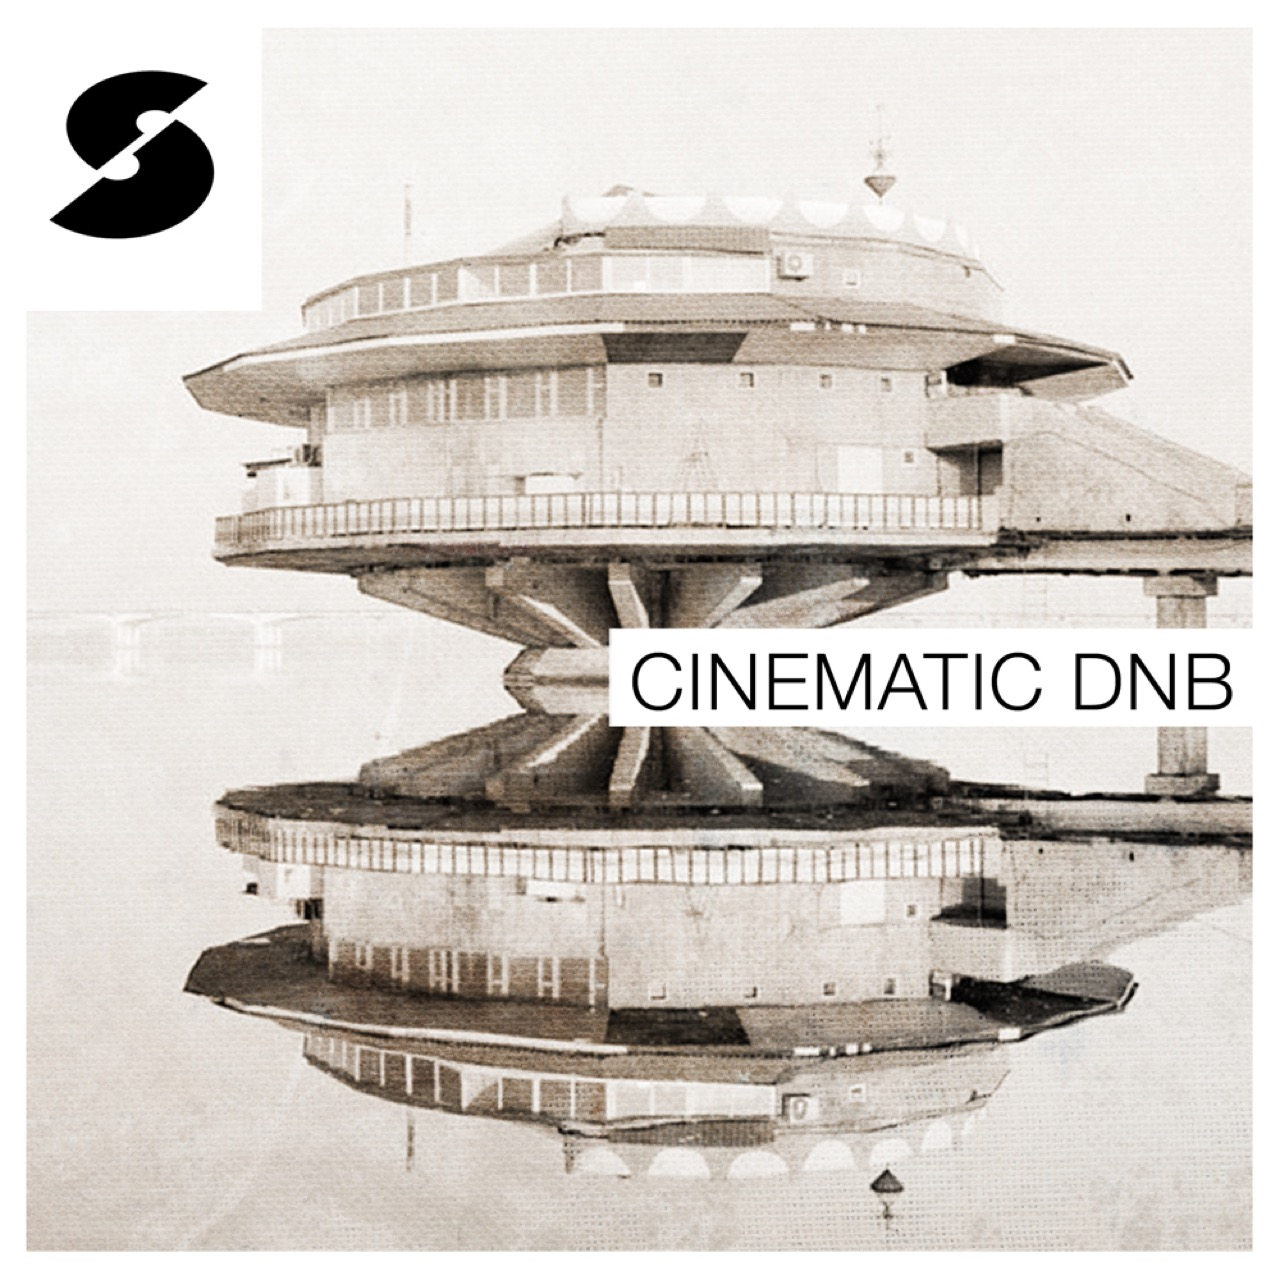 Cinematic DnB